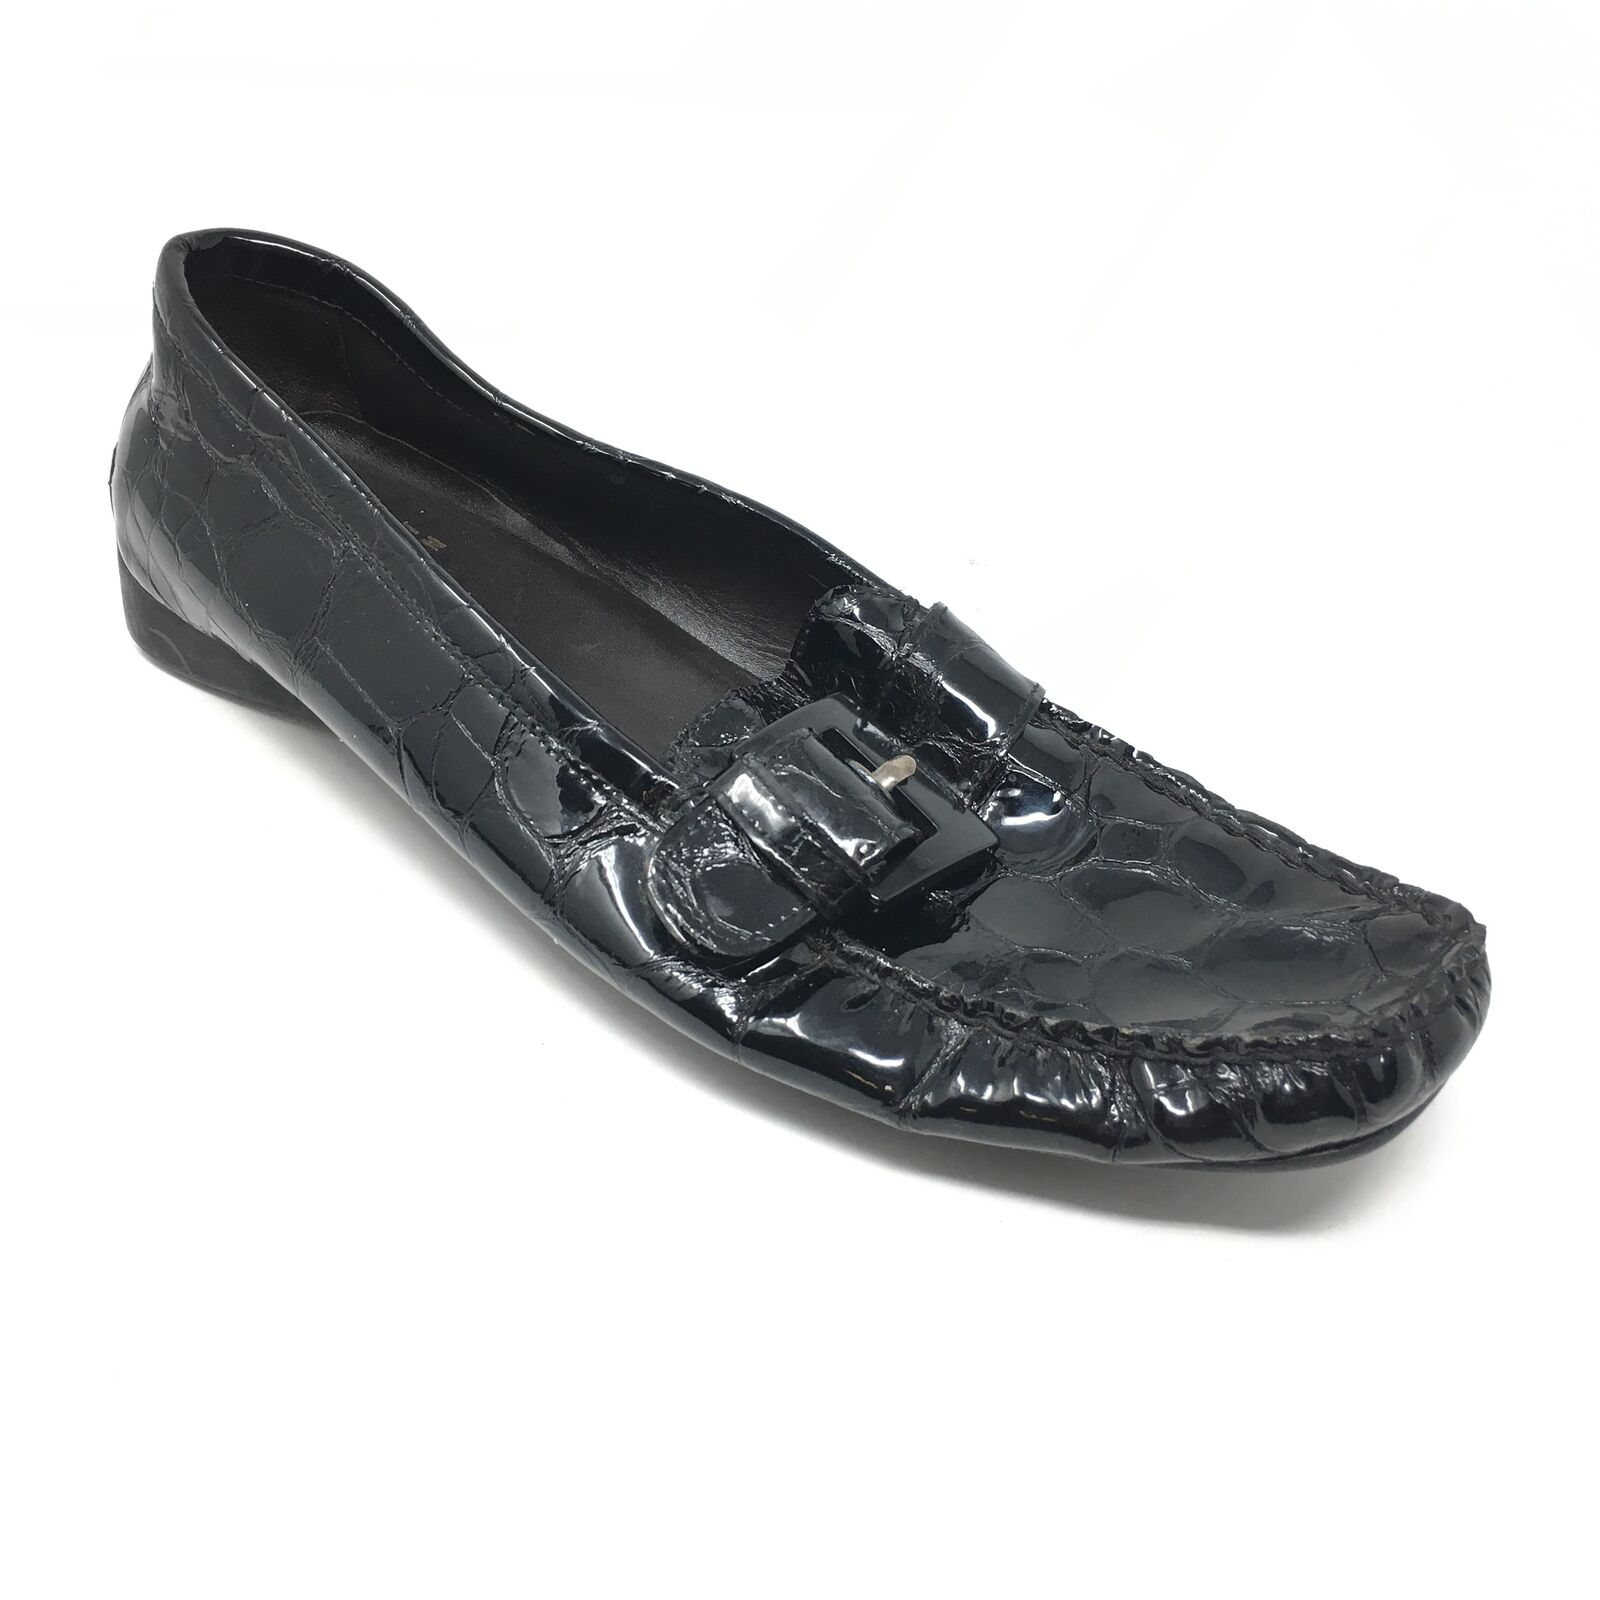 Women's Stuart Weitzman Loafers shoes Size 8N Black Patent Crocodile Print V2